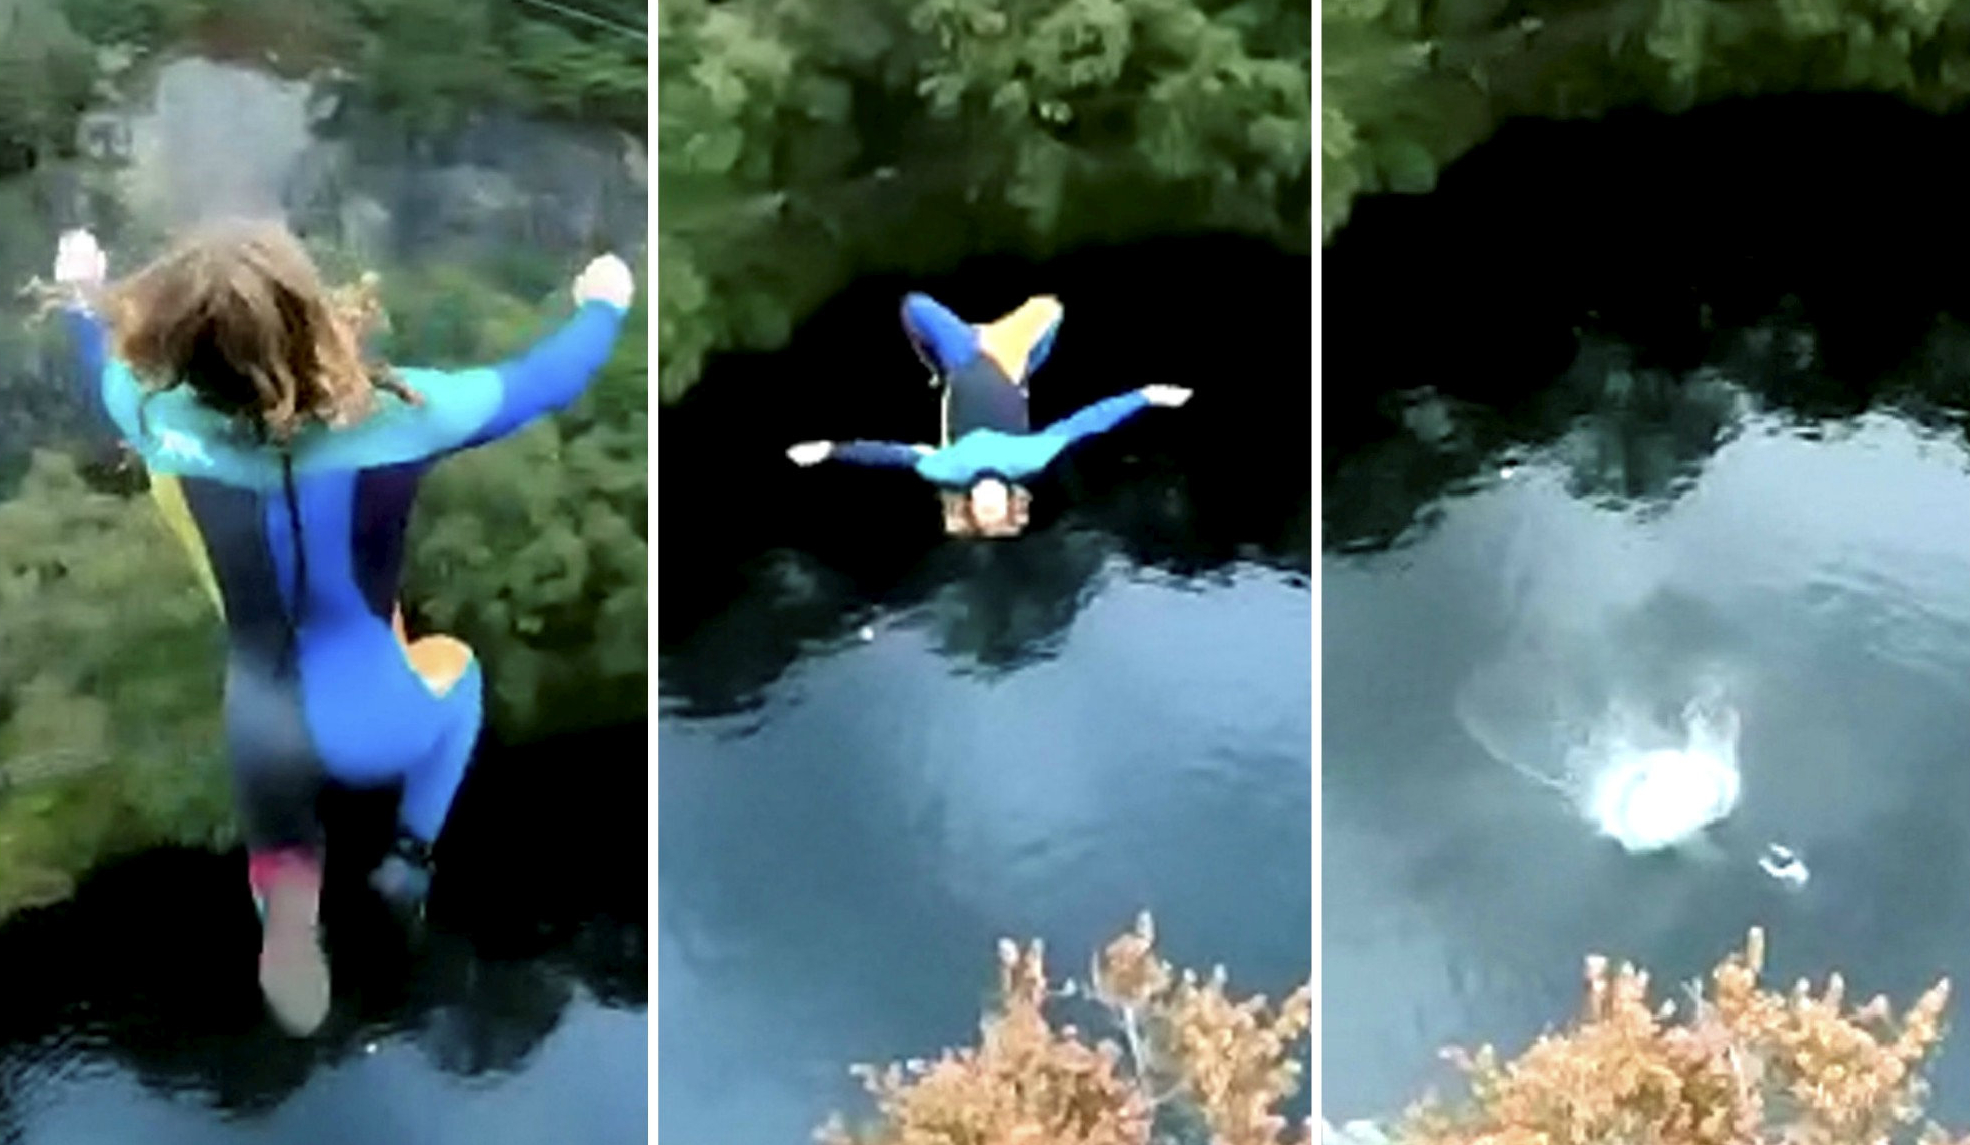 Watch breathtaking moment daredevil somersaults 73ft into lake at bottom of North Wales quarry